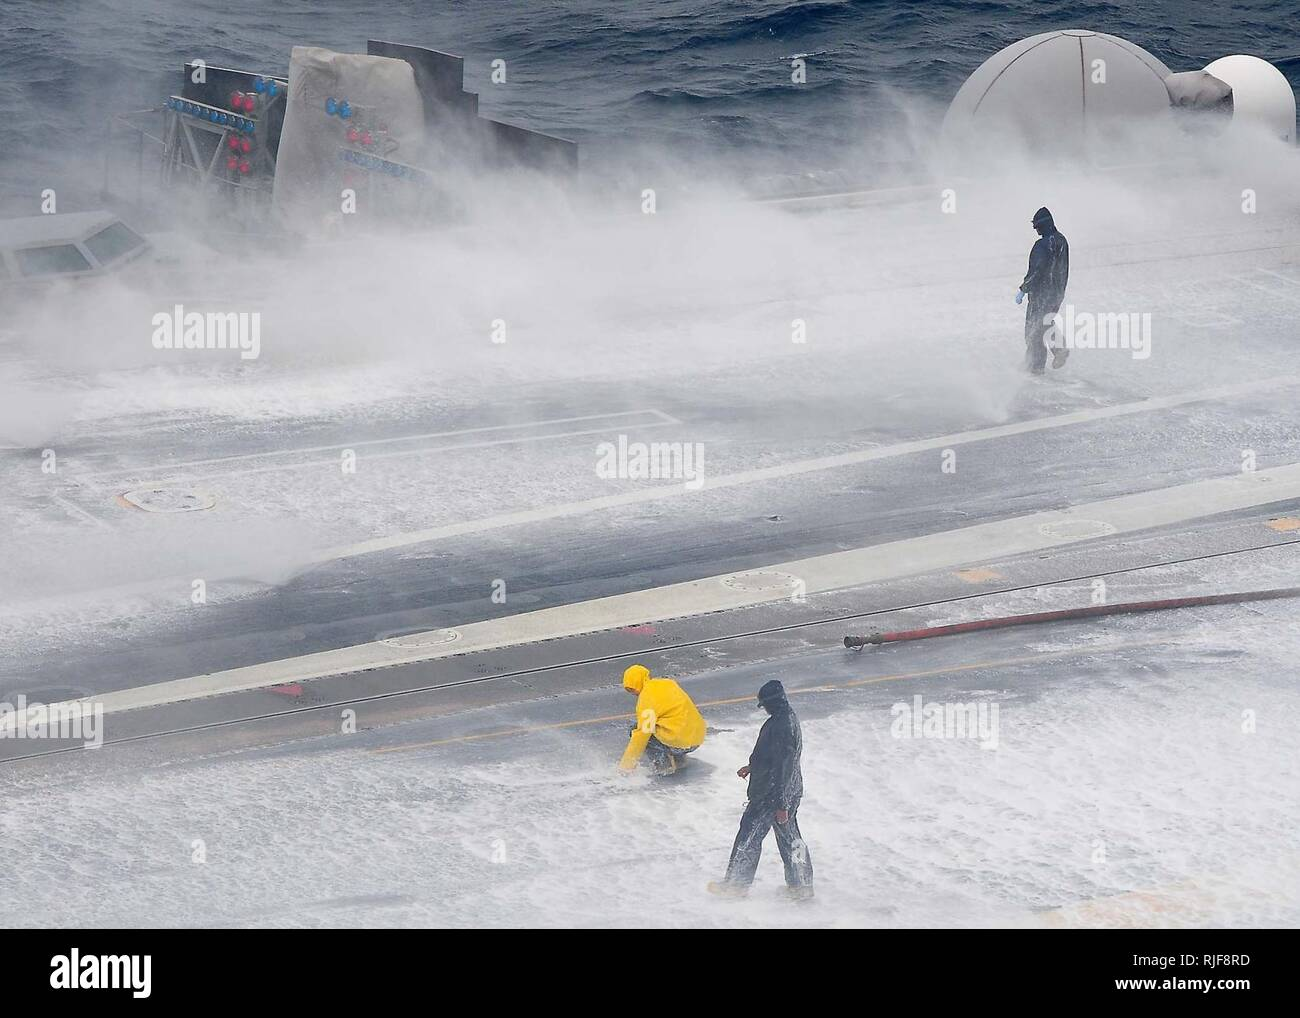 Sailors validate the shipboard firefighting system during an Aqueous Film Forming Foam system test on the flight deck aboard of the aircraft carrier USS George Washington to qualify the flight deck for operations. George Washington is conducting sea trials and carrier qualifications in the western Pacific Ocean following its first Selected Restricted Availability. Stock Photo